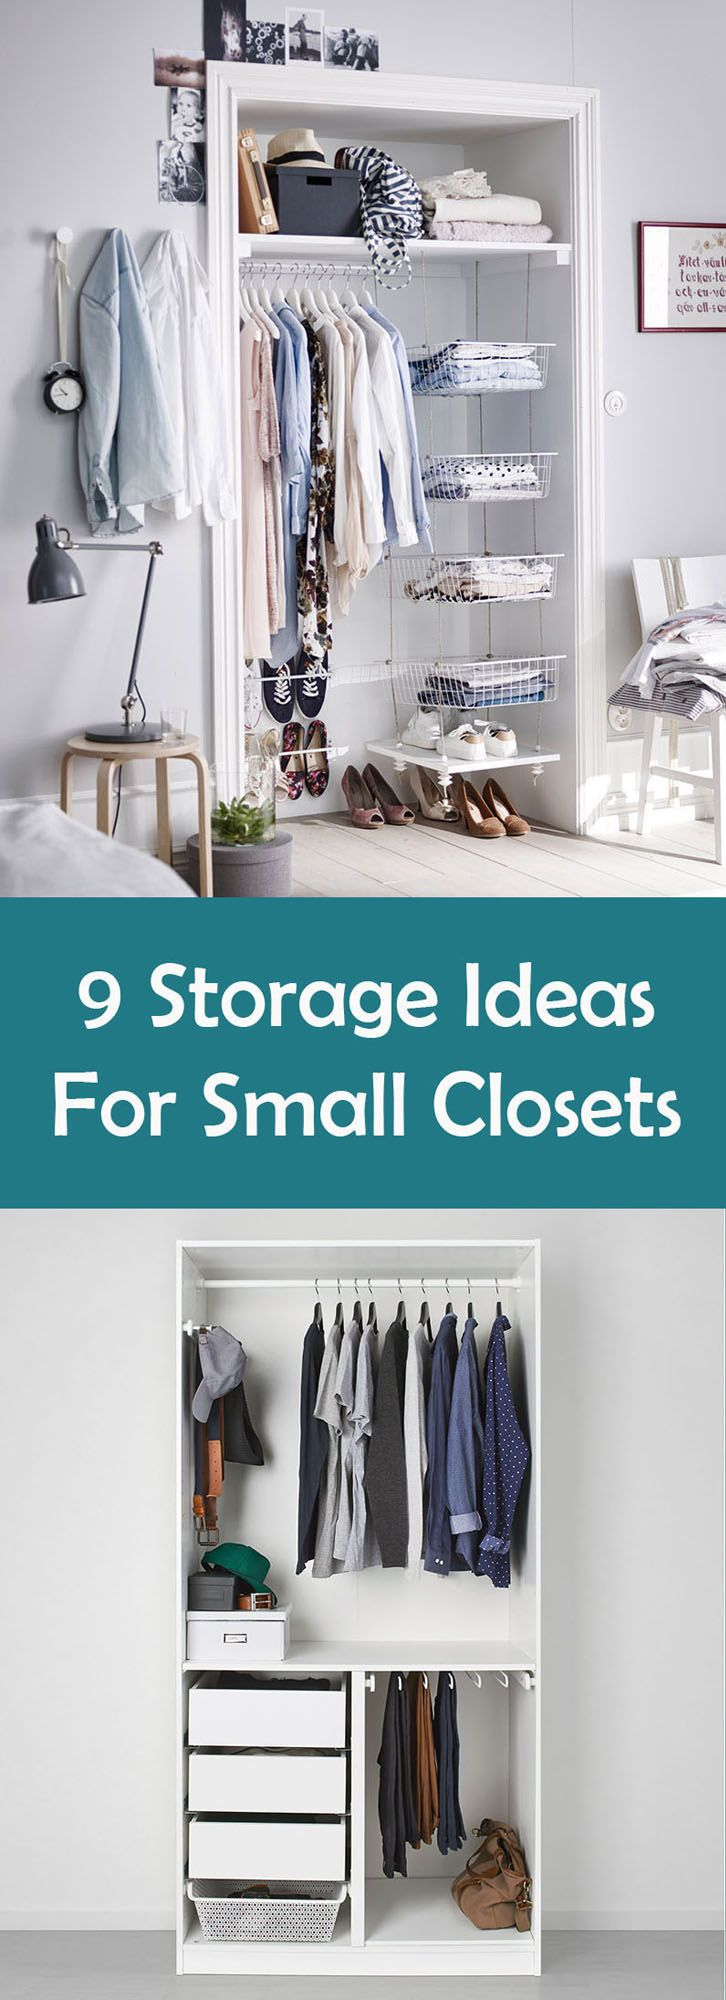 9 storage solutions for small closets rv storagestorage ideassmall closet - Closet Design For Small Closets